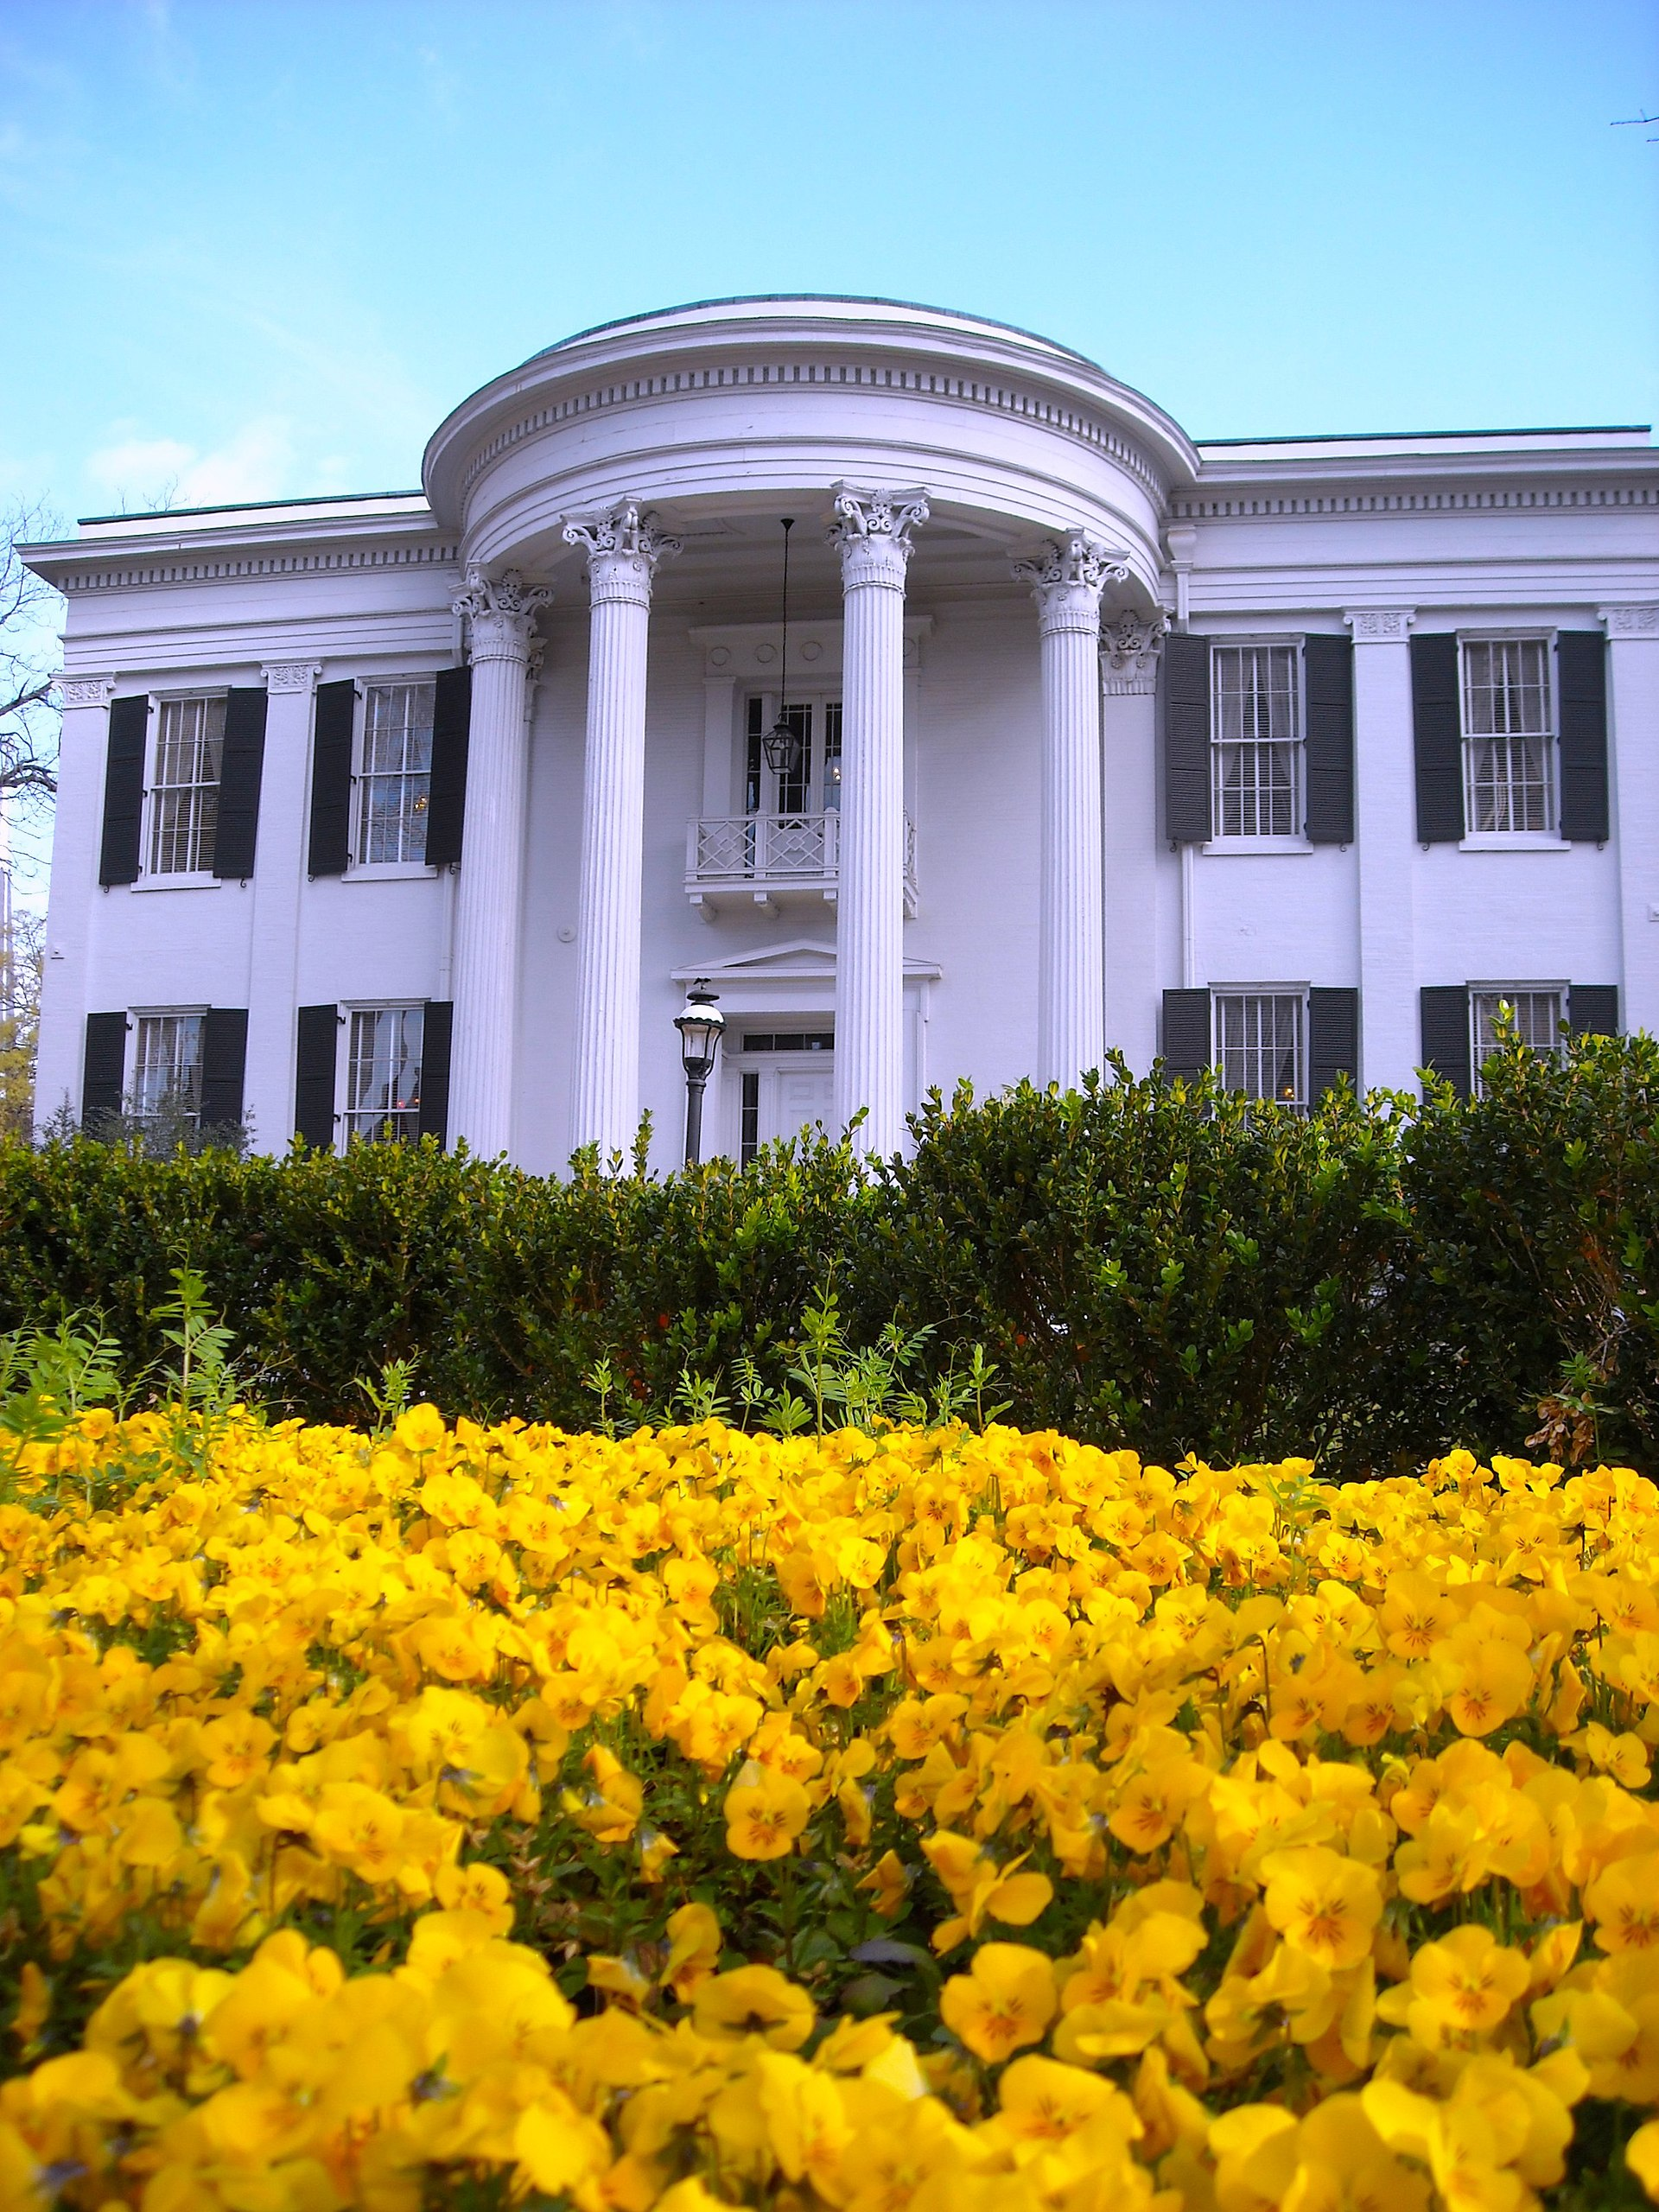 Mississippi S First Interracial Couple August 3 1970: Mississippi Governor's Mansion